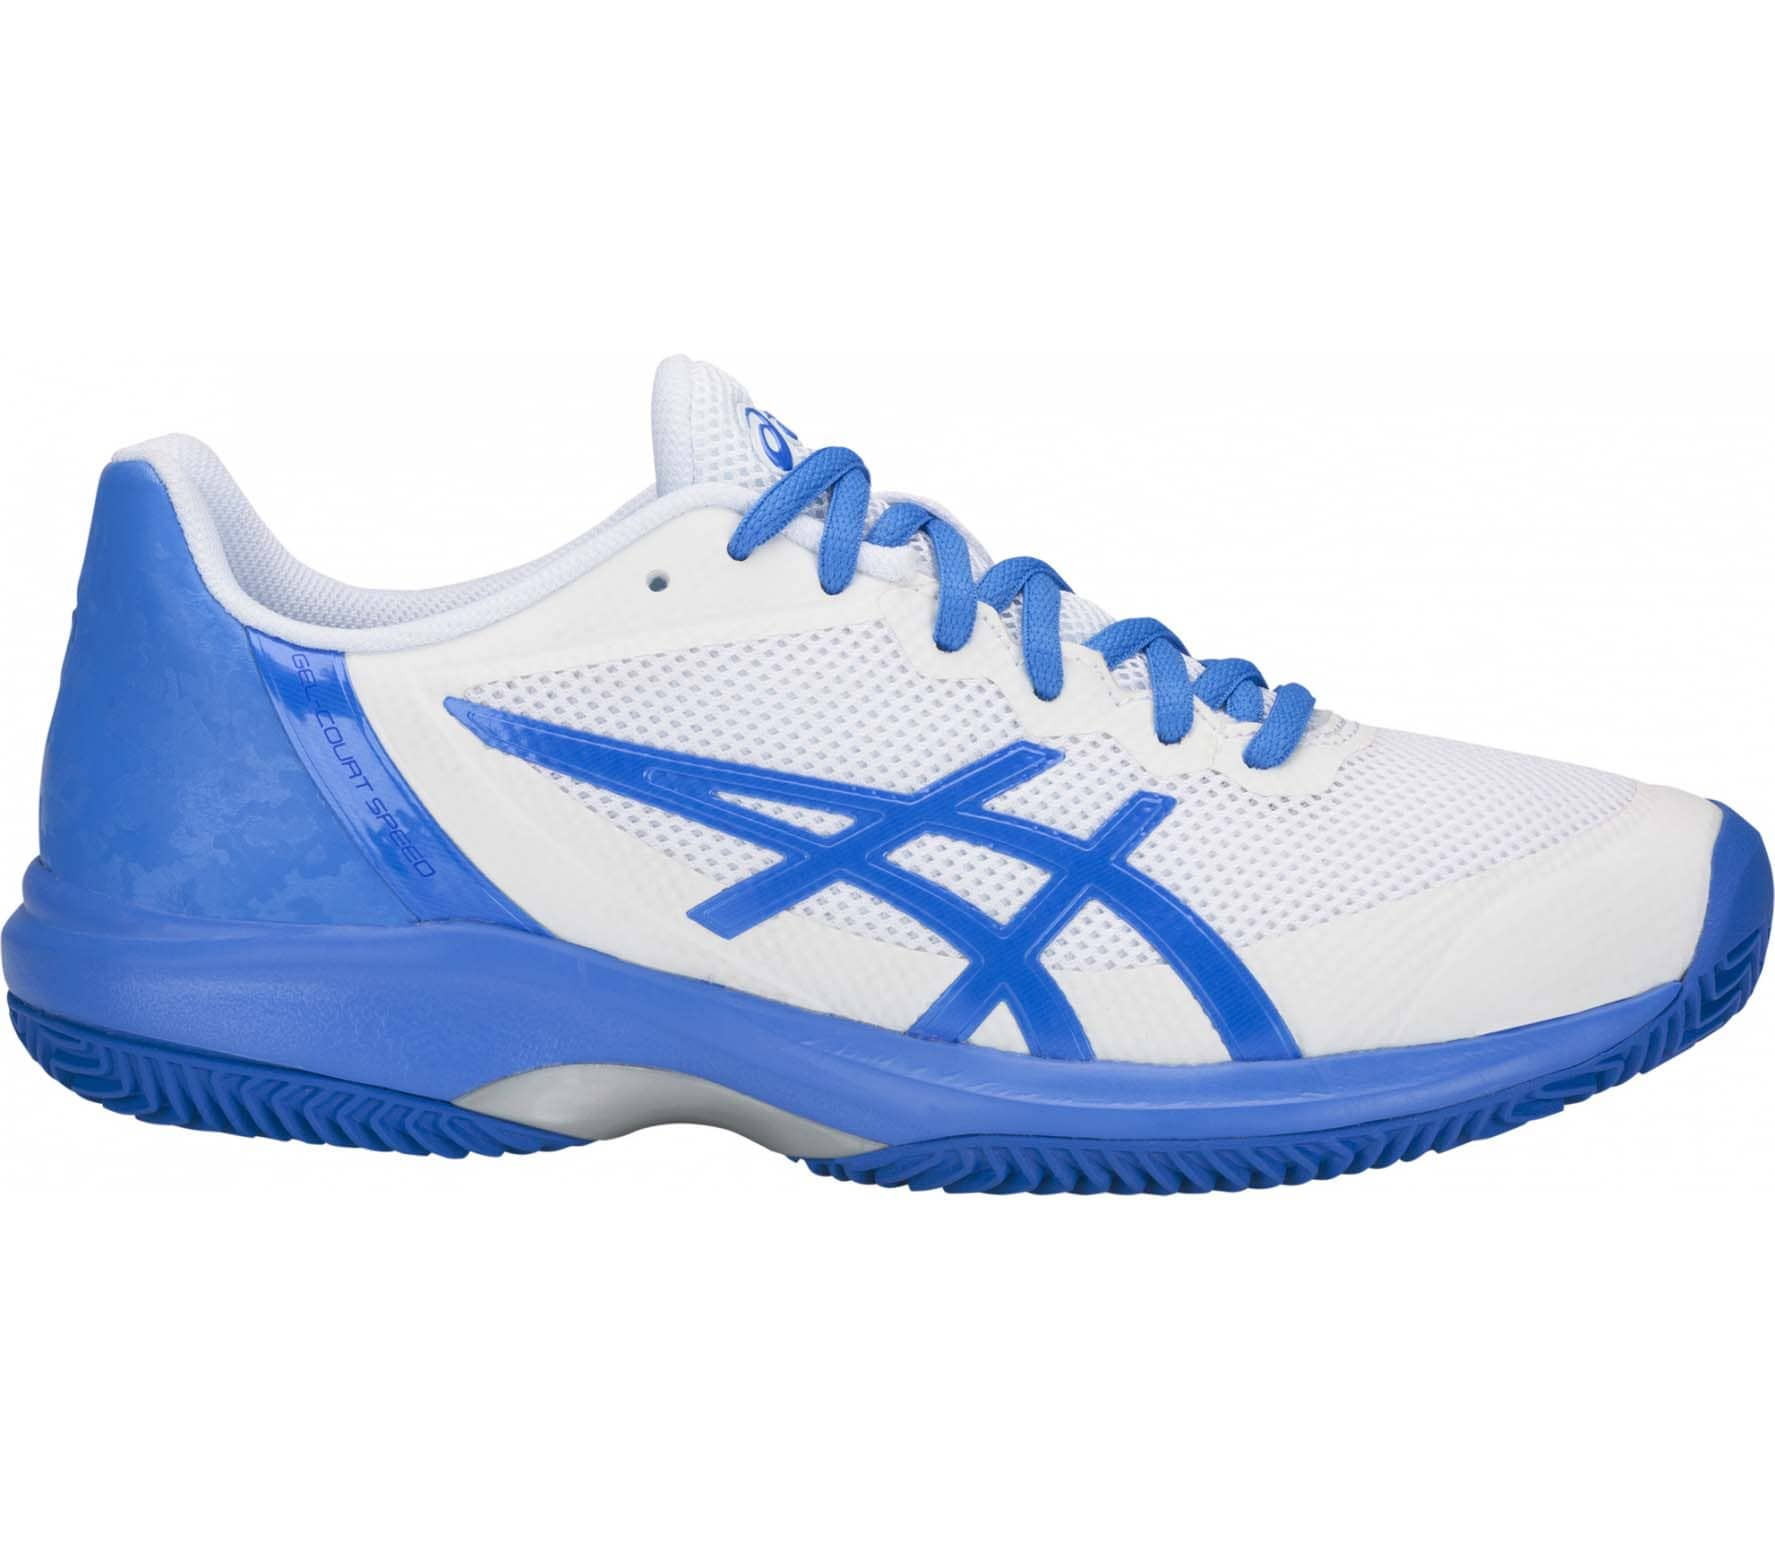 0a3fab459050 ASICS - Gel-Court Speed Clay women s tennis shoes (white blue) - buy ...